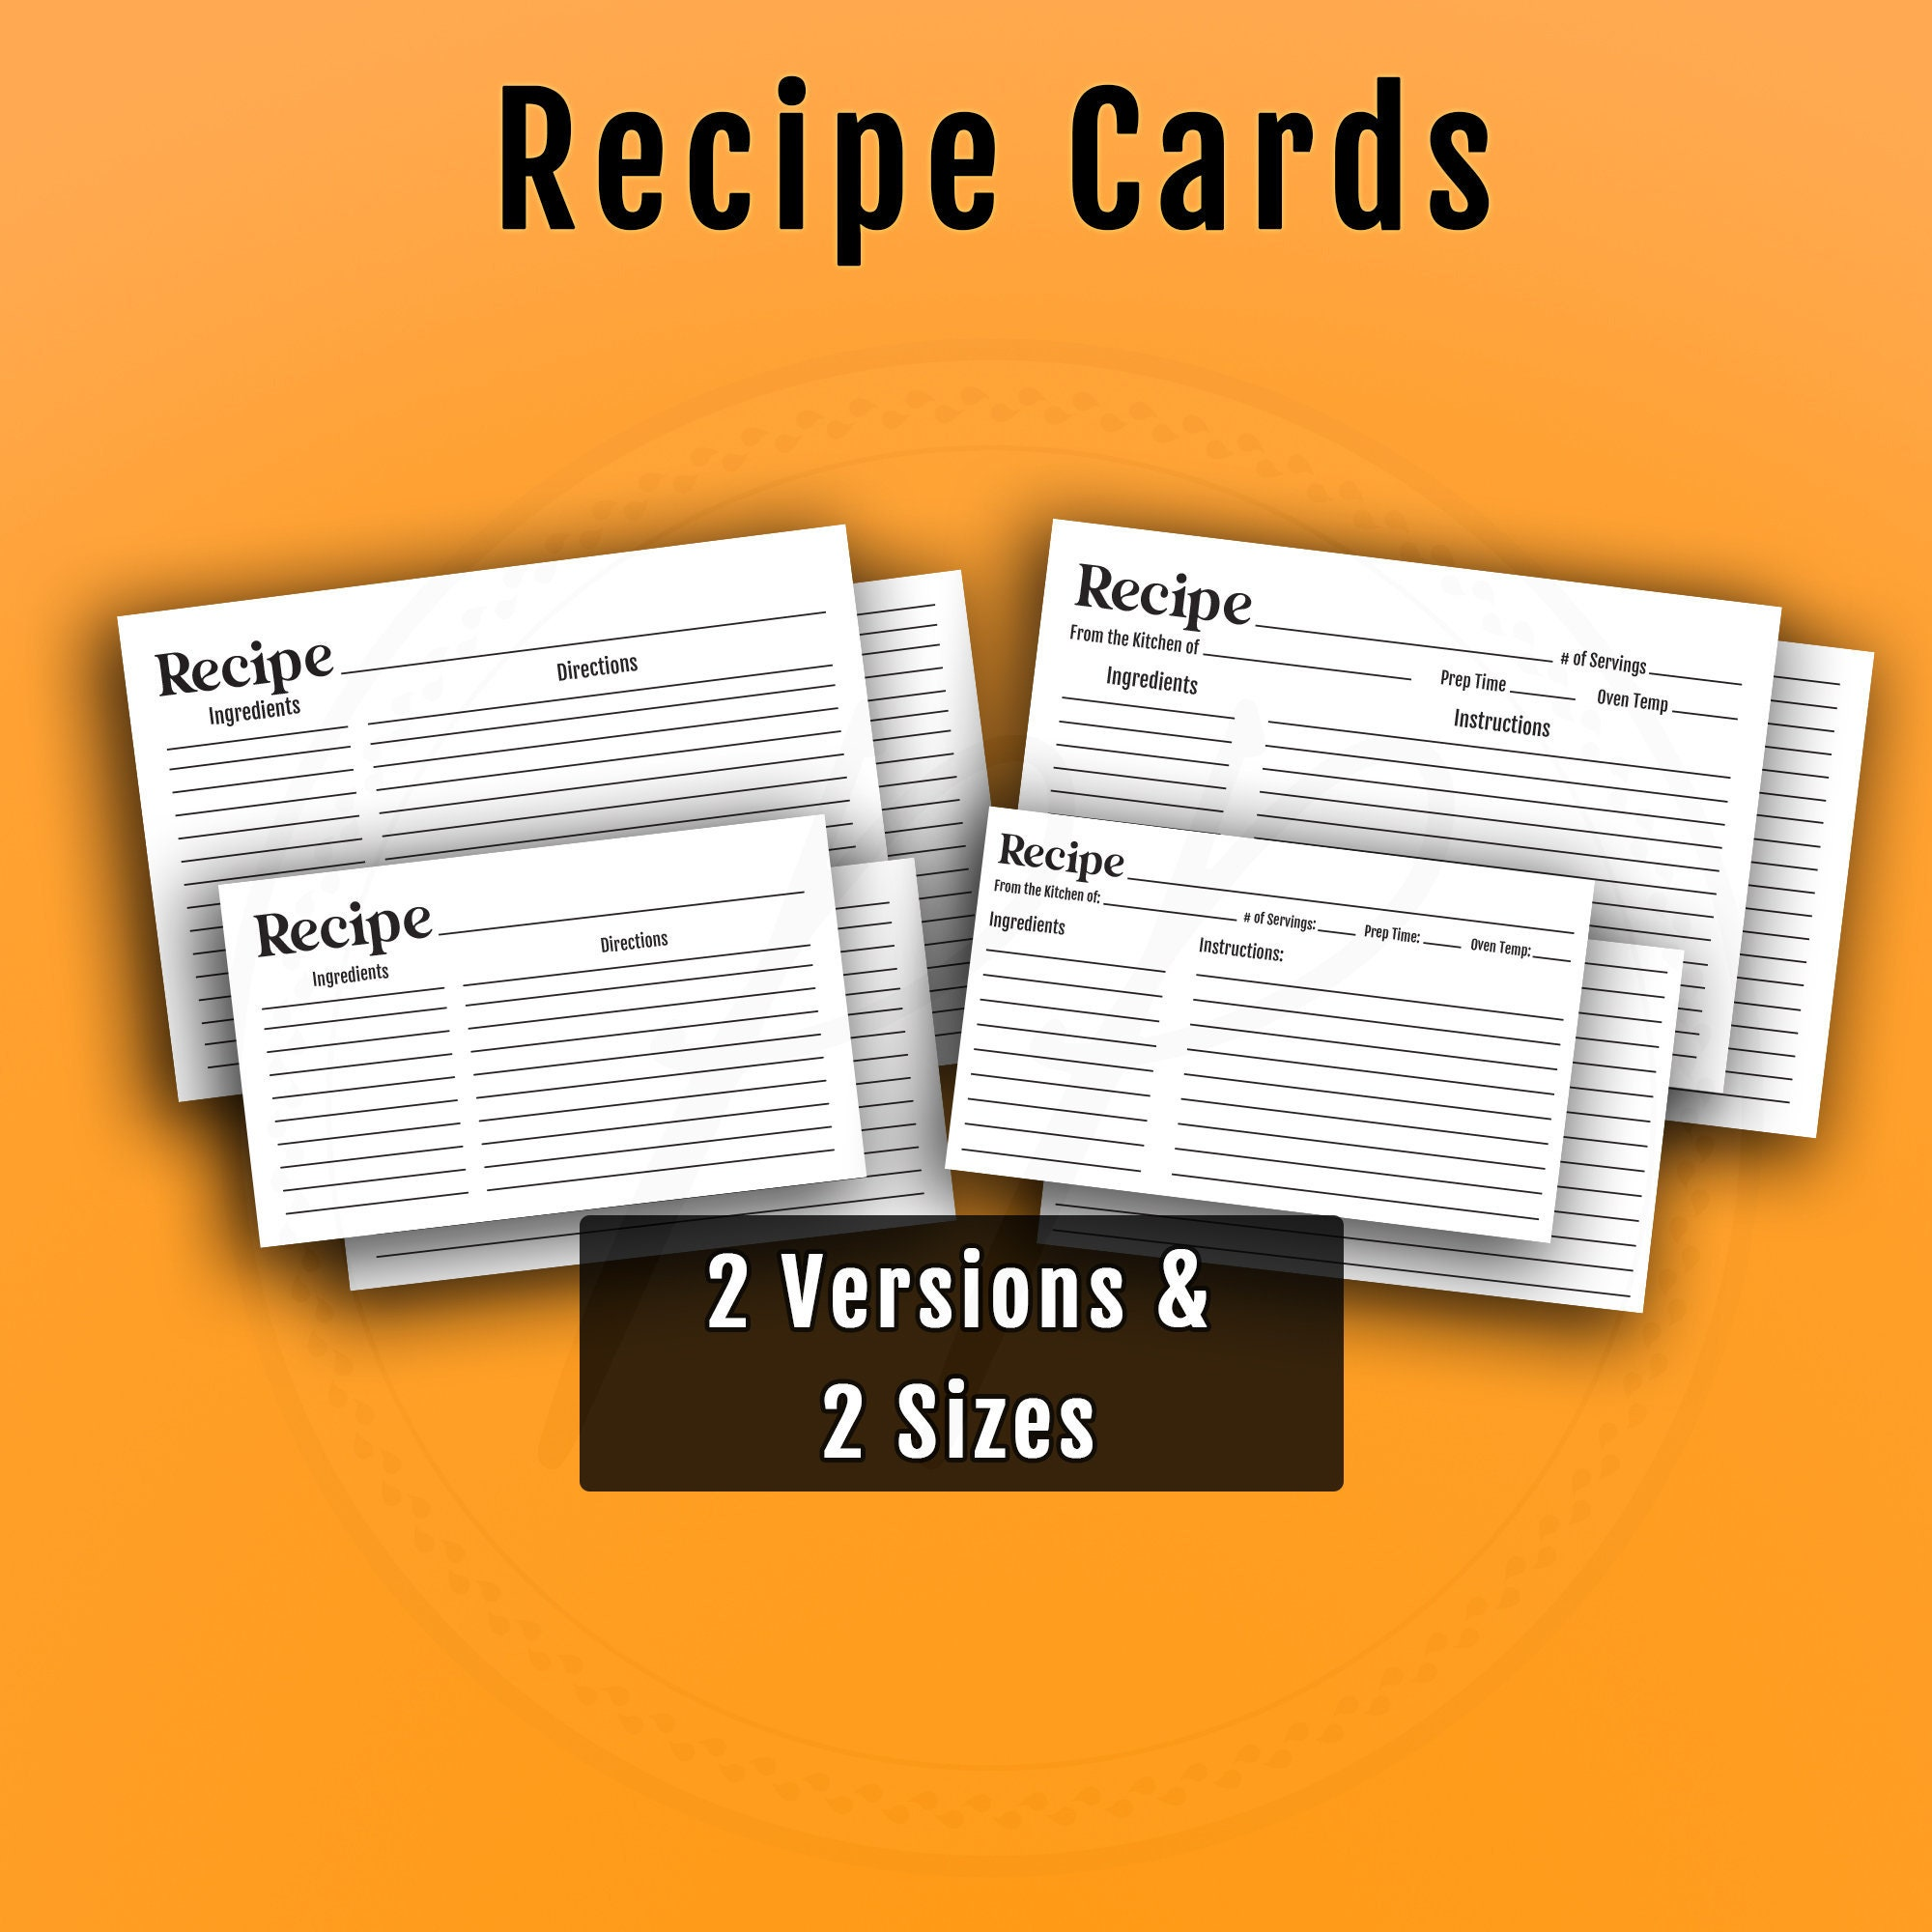 Recipe Cards Set 225x25 Recipe Cards 25x25 Index Card Recipe Journal Meal Plan  Recipe Template Recipe Binder Food Chart Recipe Card Print Food Intended For 3 X 5 Index Card Template